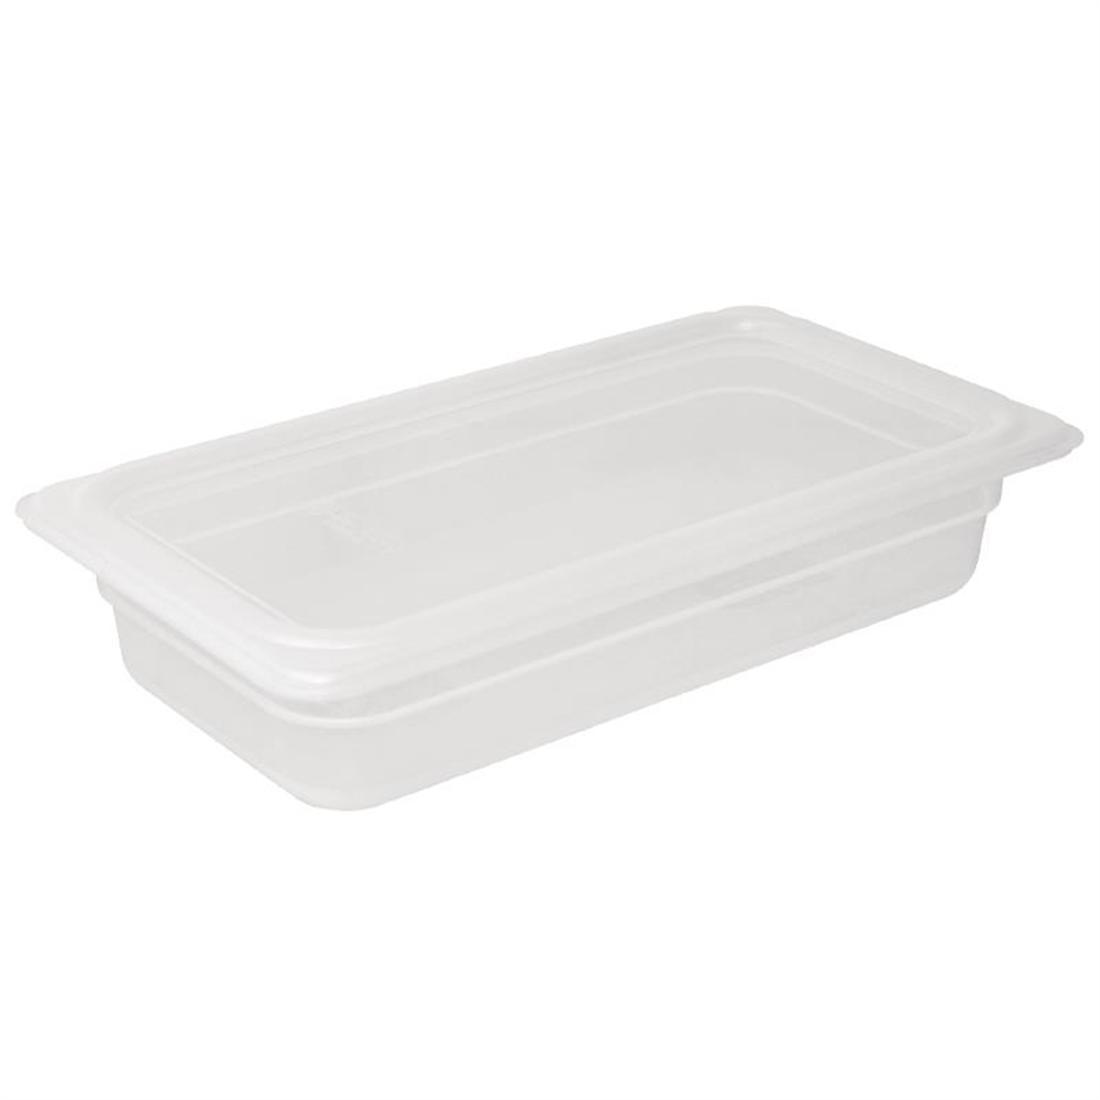 Vogue Polypropylene 1/3 Gastronorm Container with Lid 100mm - Pack of 4 - GJ519